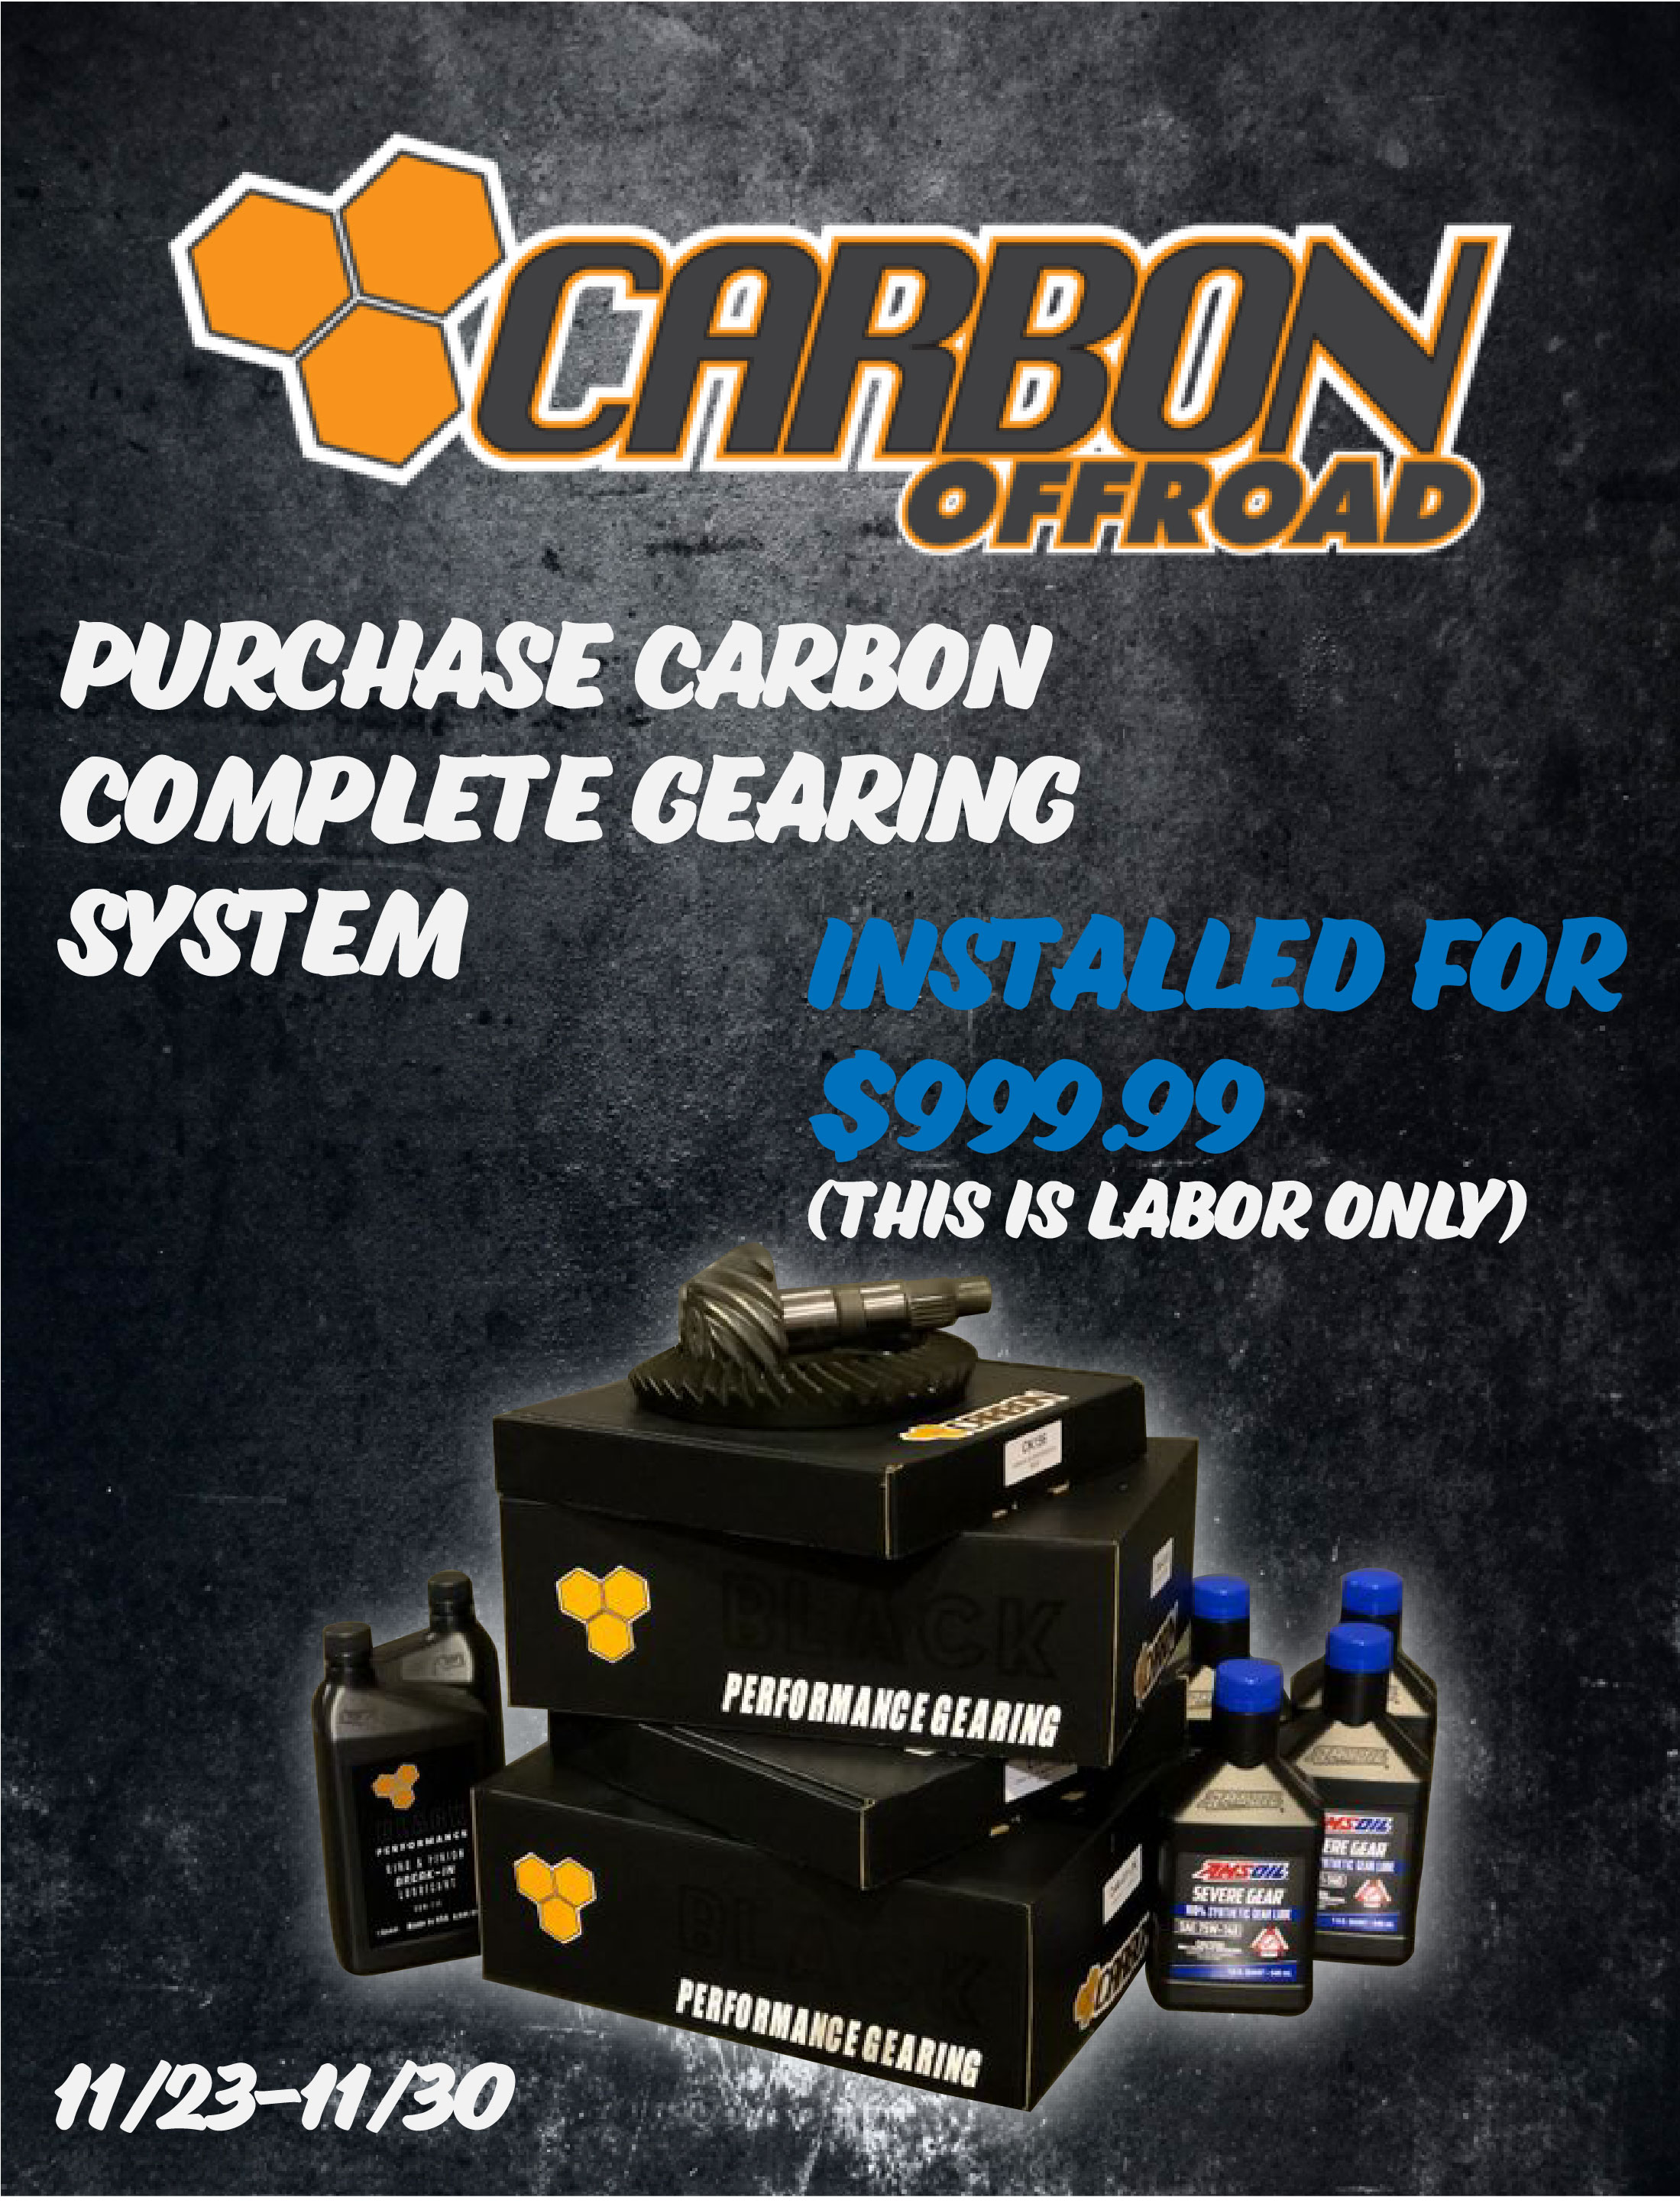 Purchase full Carbon Gear System and qualify for $999.99 install